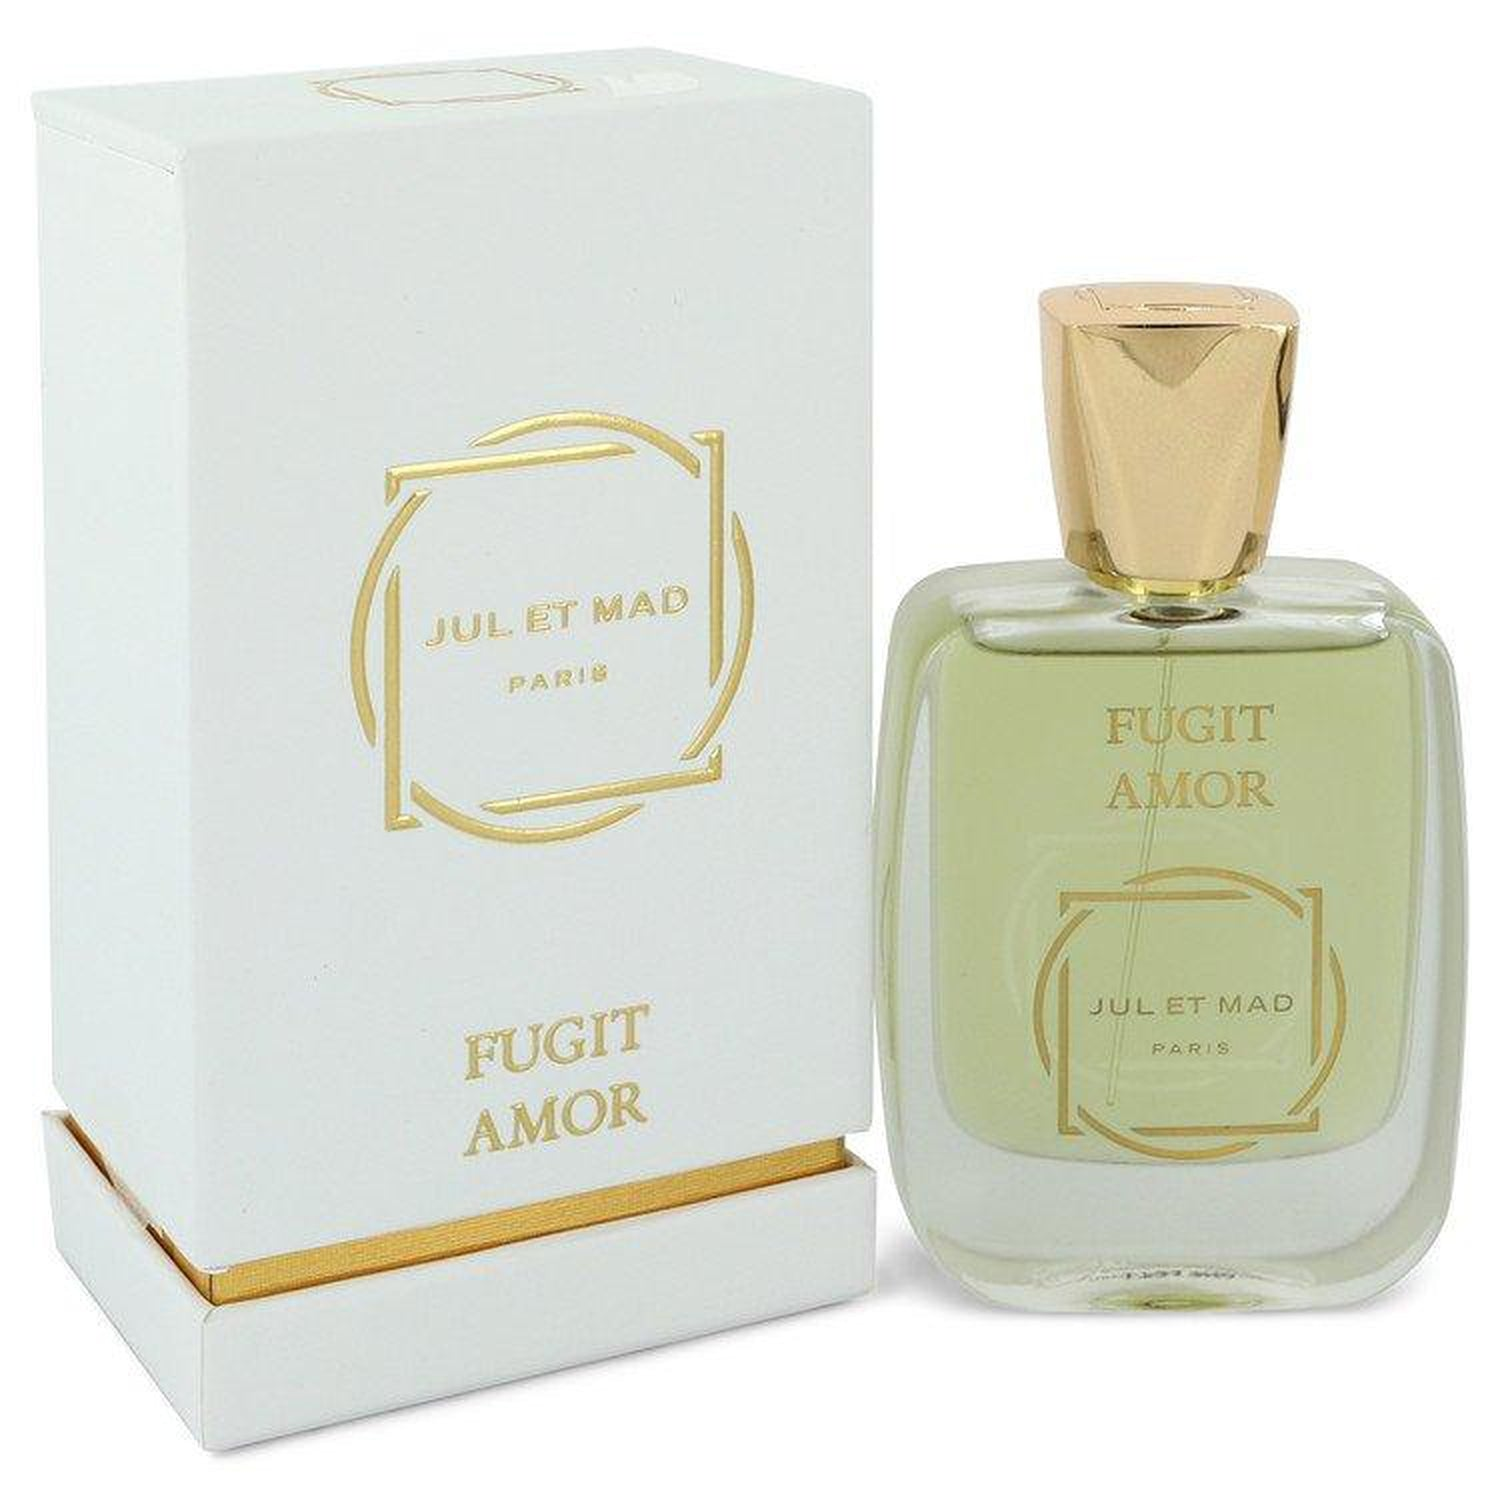 Fugit Amor by Jul Et Mad Paris Extrait De Parfum Spray (Unisex) 1.7 oz